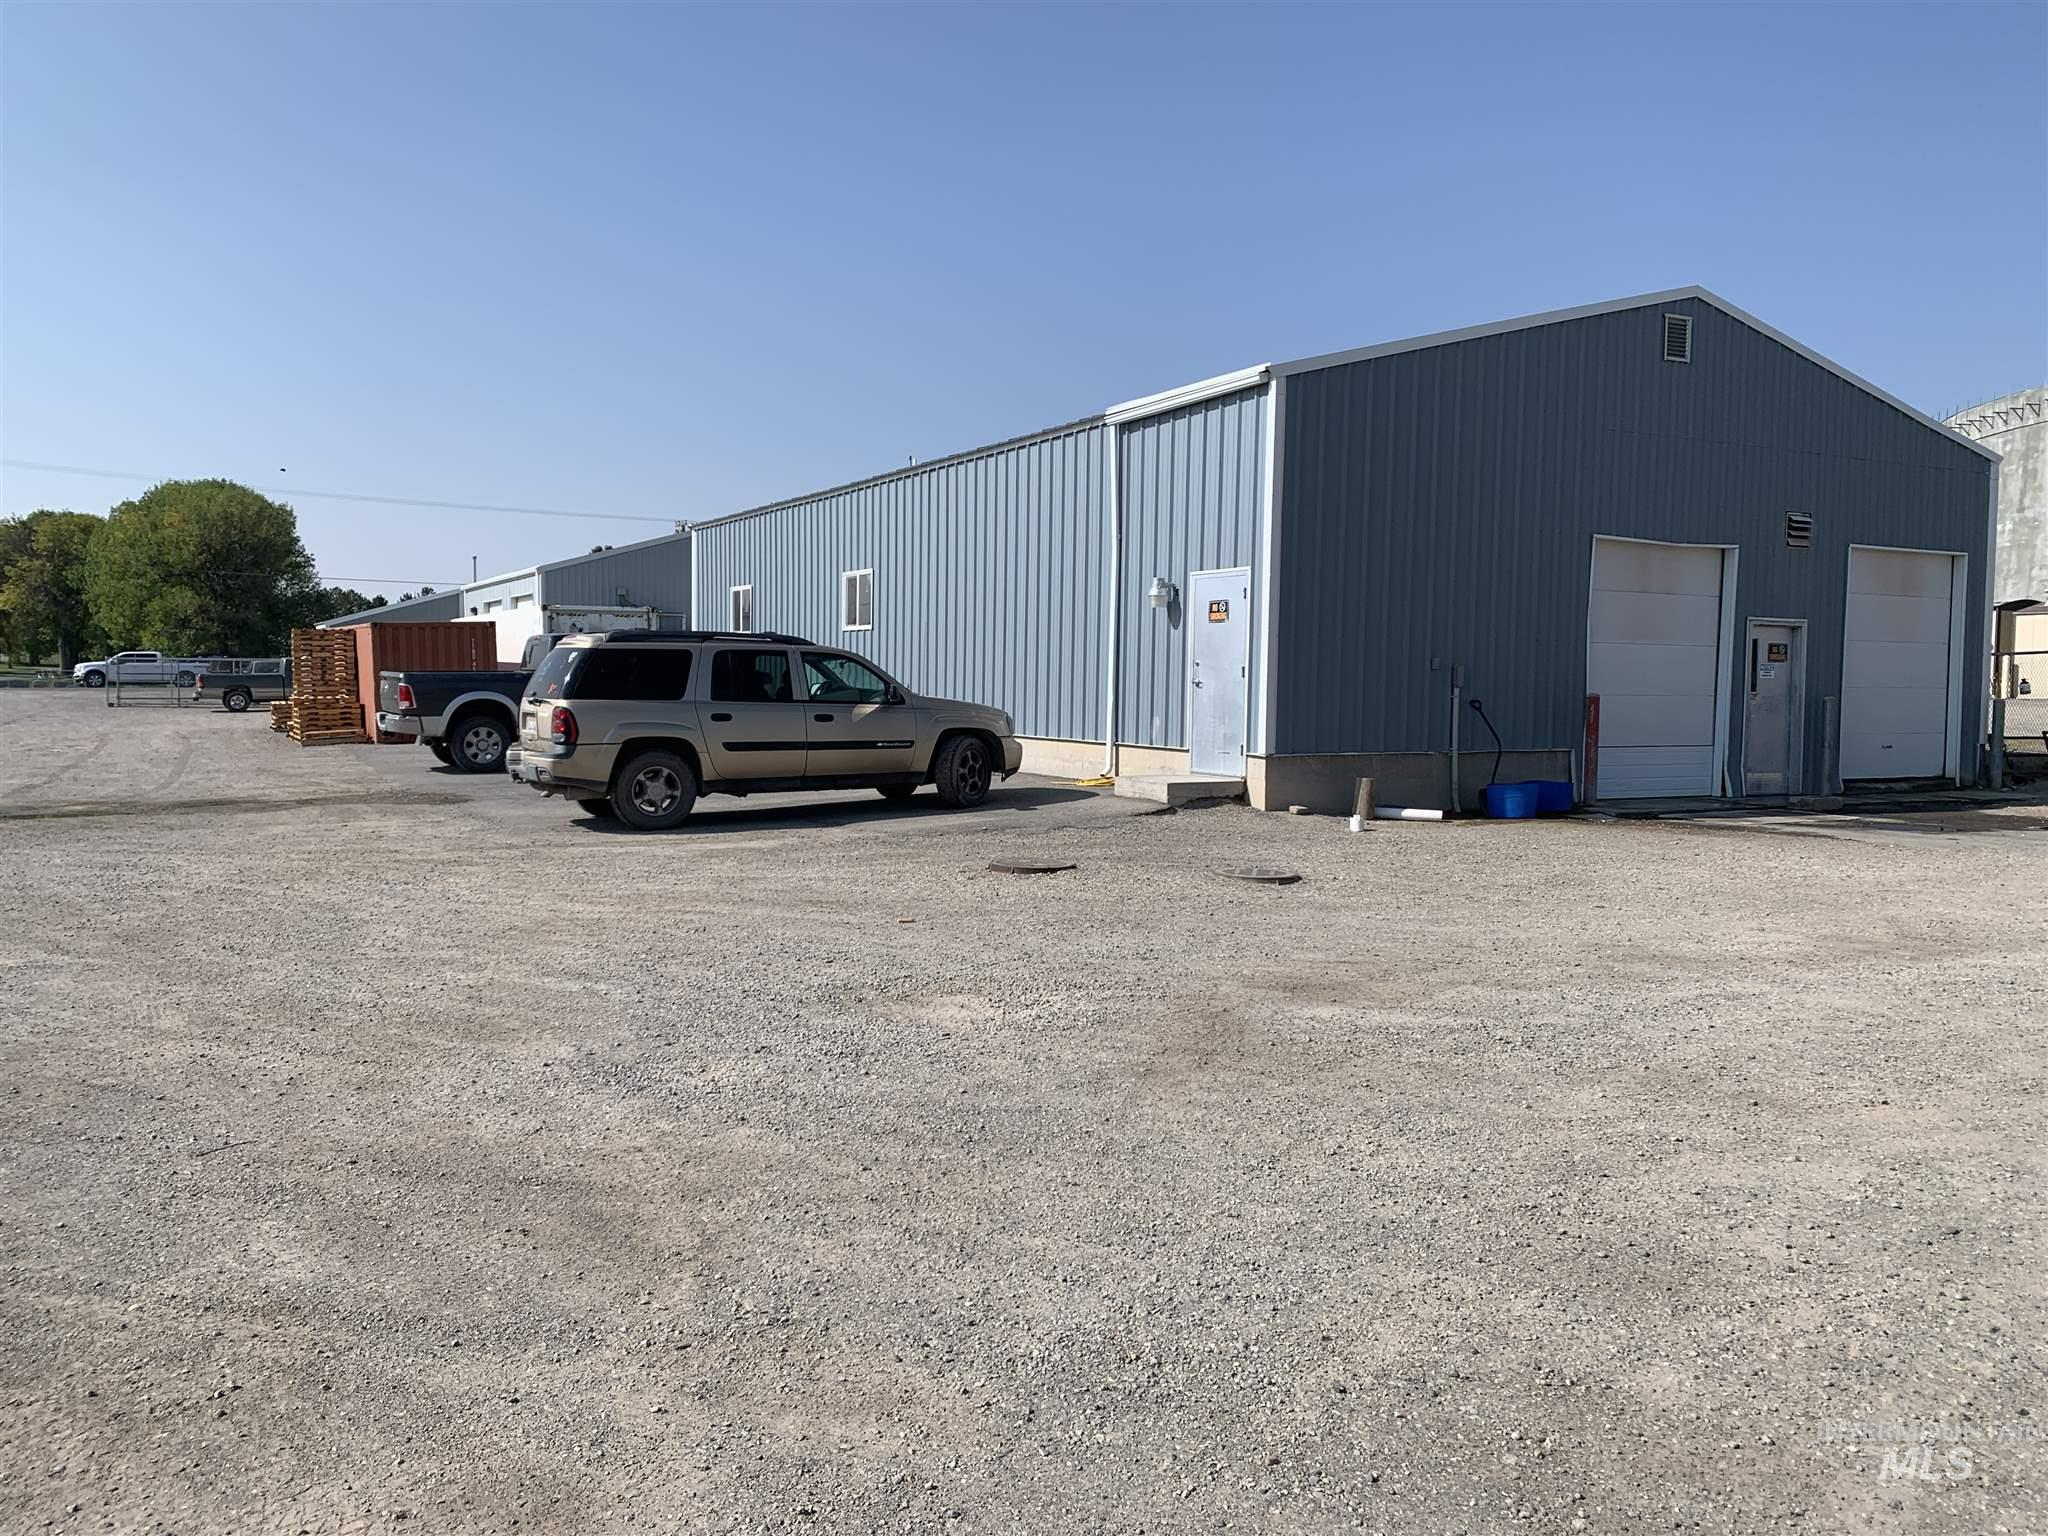 1 1/2 acres with 2 each 40' X 60' Buildings with coolers and rails for processing meat. - Jack H Hill, Voice: 208-431-4700, Western Hills Realty, Main: 208-678-9300, http://www.westernhillsrealty.net